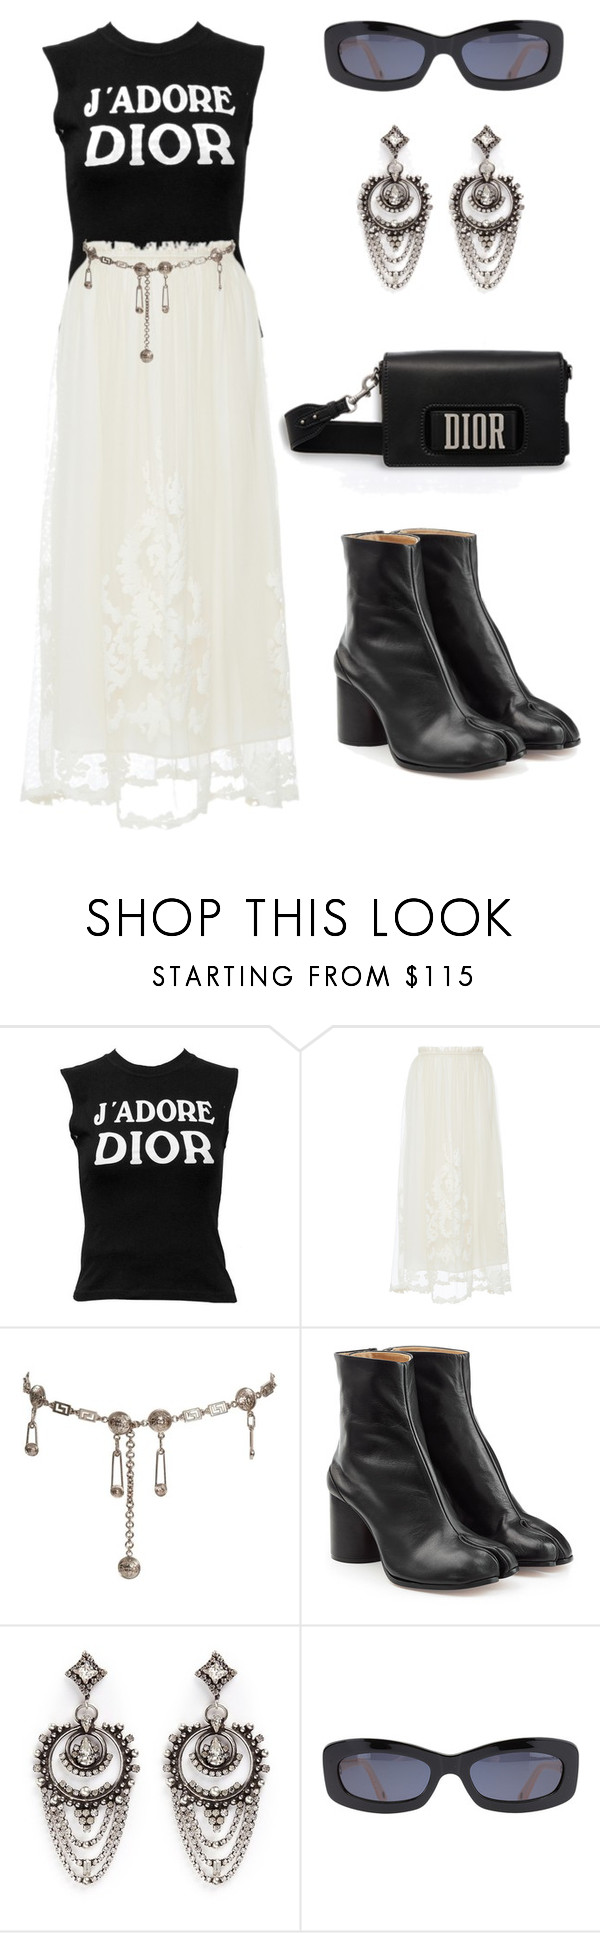 """Untitled #1102"" by lucyshenton ❤ liked on Polyvore featuring Christian Dior, Blugirl, Versace, Maison Margiela, DANNIJO and Chanel"